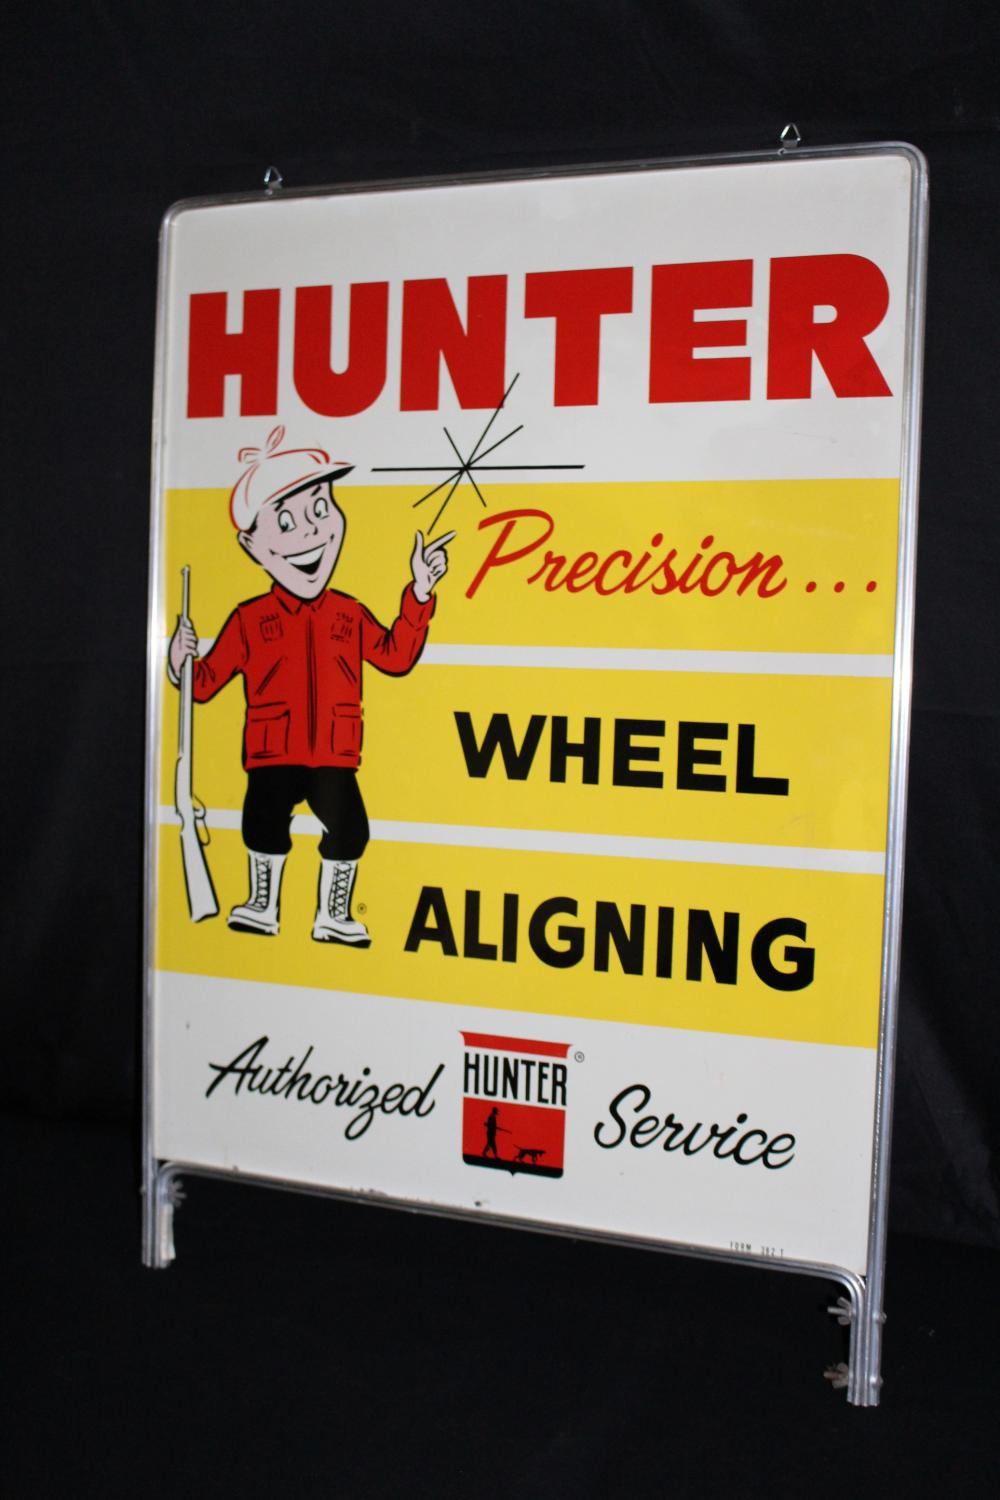 HUNTER WHEEL ALIGNING ATHORIZED SERVICE SIGN